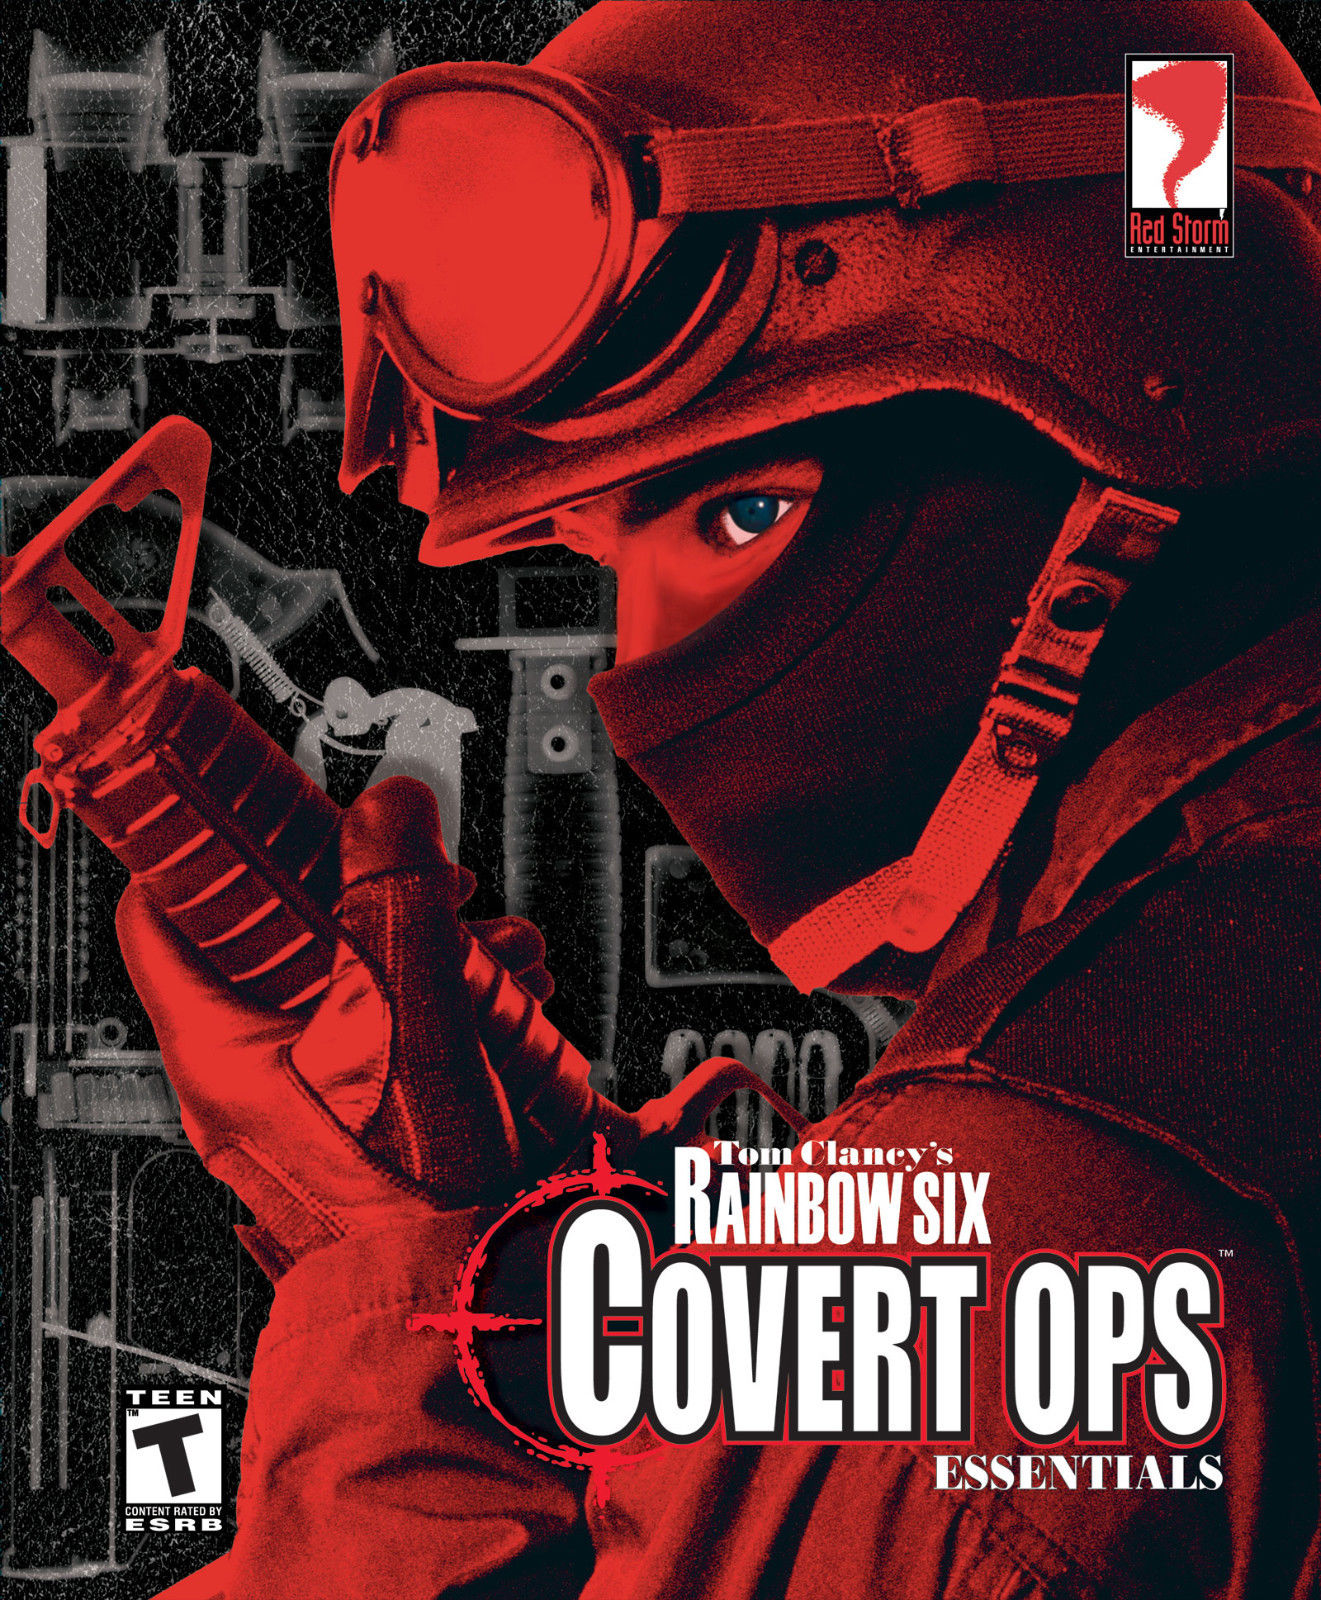 $7 78 - Tom Clancy's Rainbow Six: Covert Ops Essentials